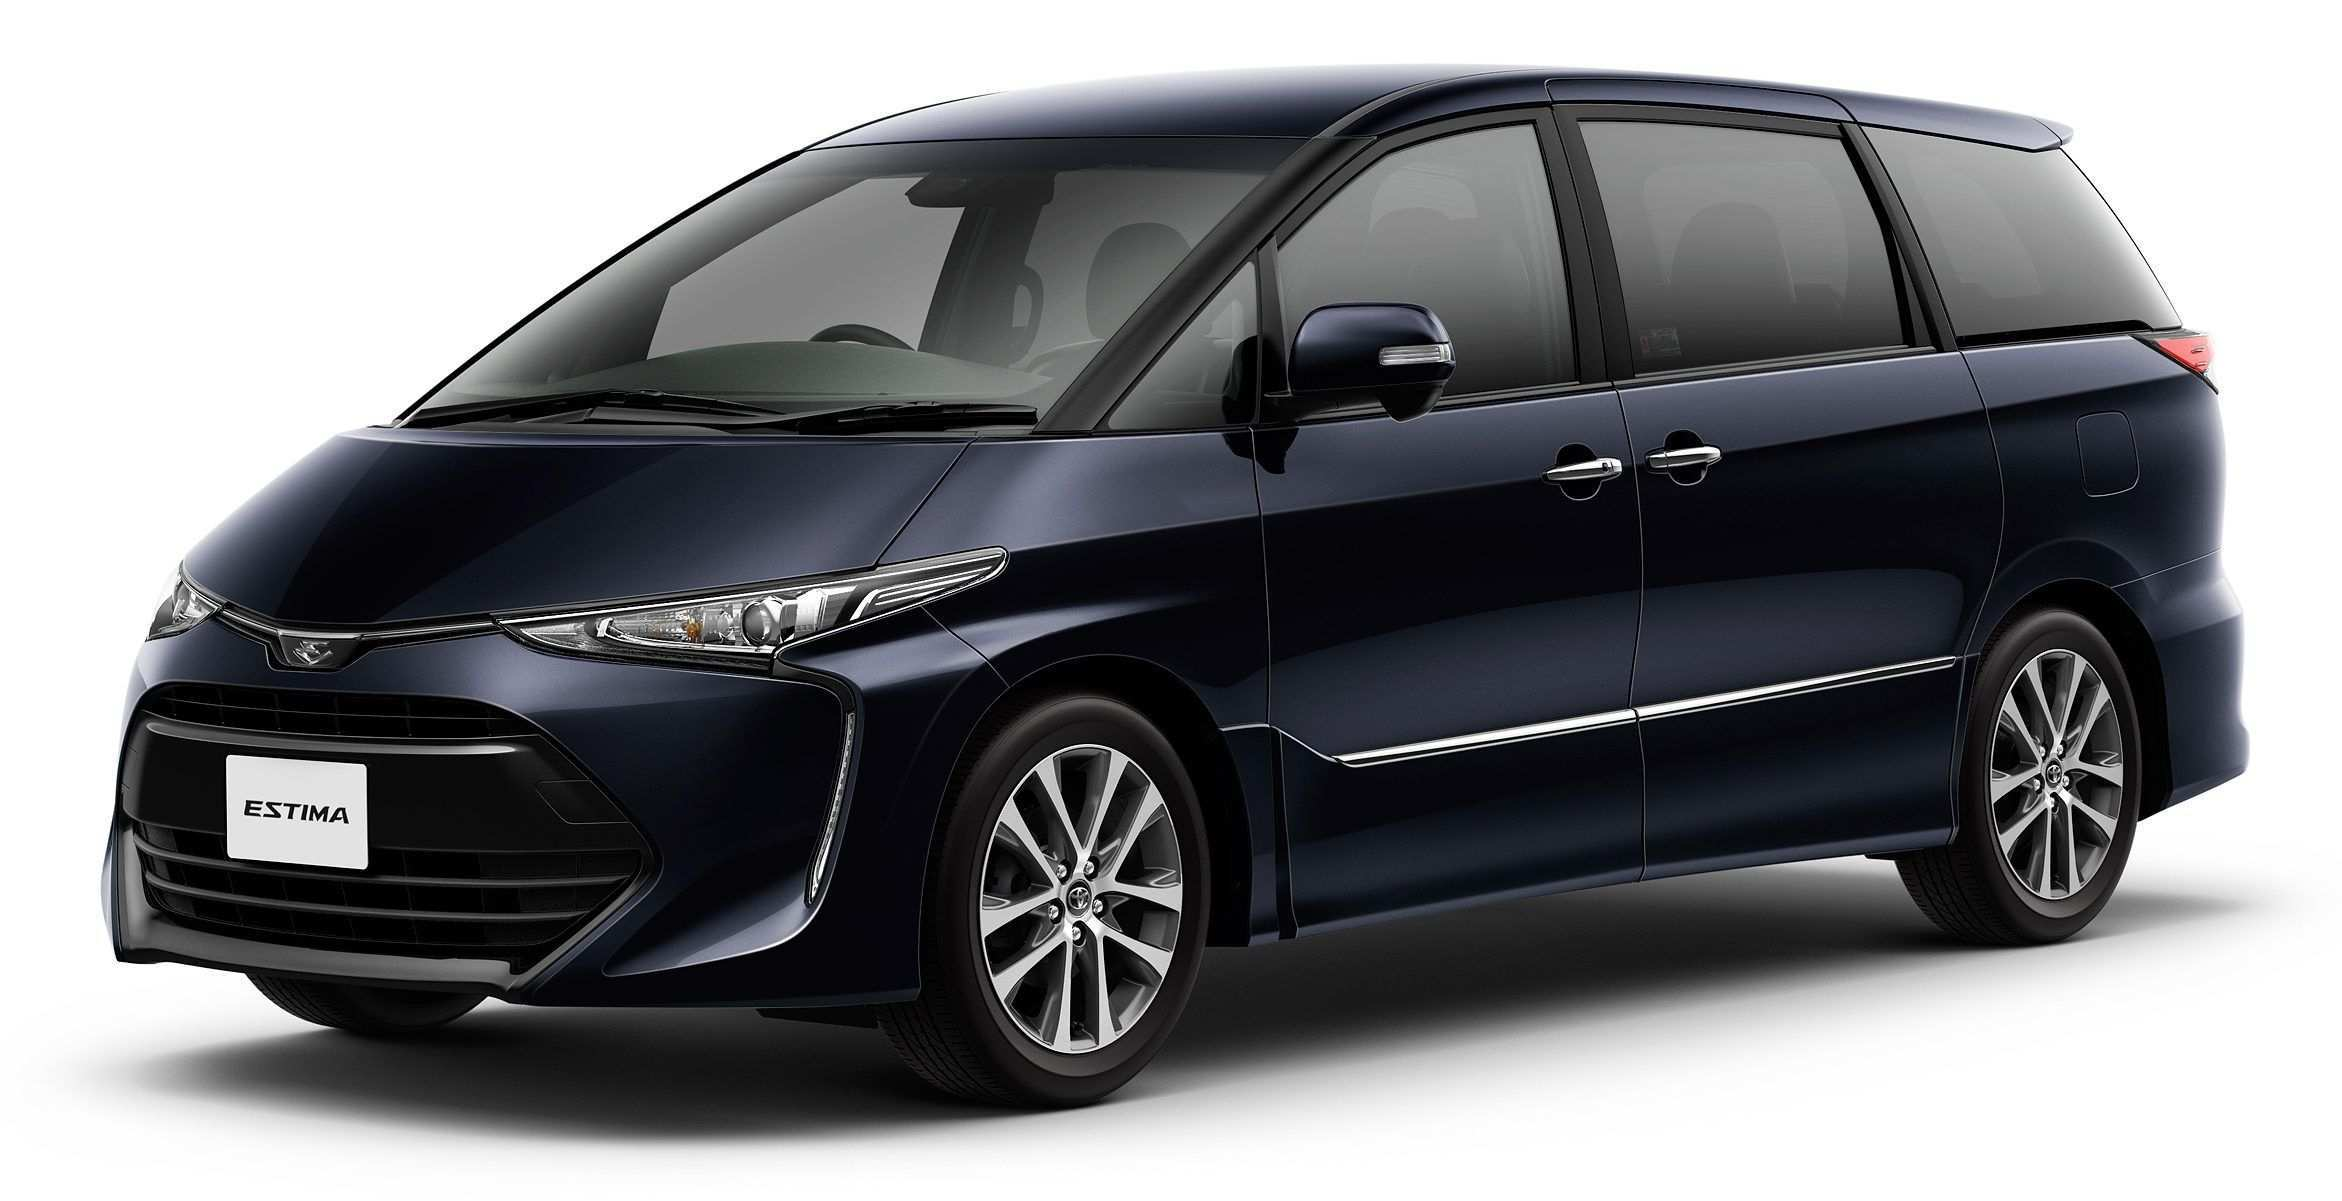 24 Best Review Toyota Estima 2020 Overview with Toyota Estima 2020